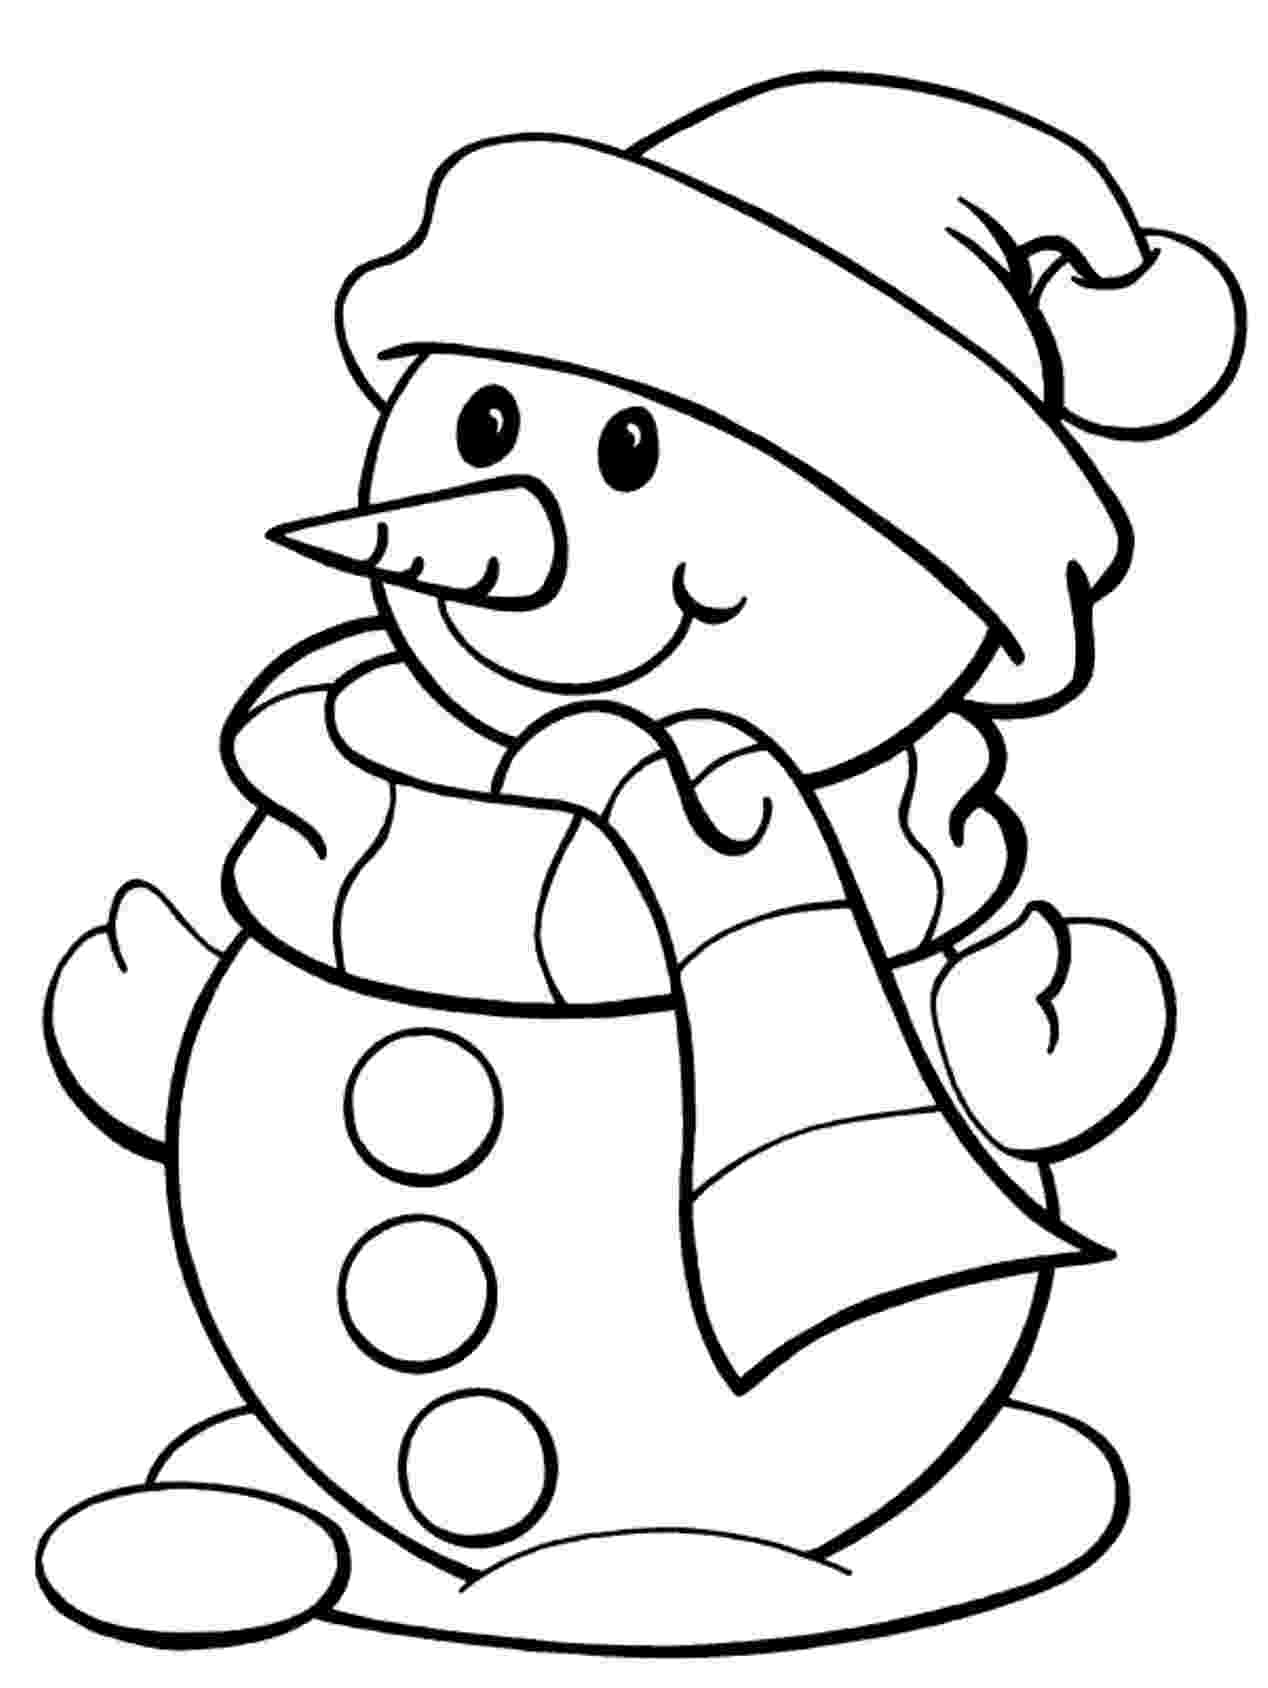 winter coloring book free printable winter coloring pages for kids book coloring winter